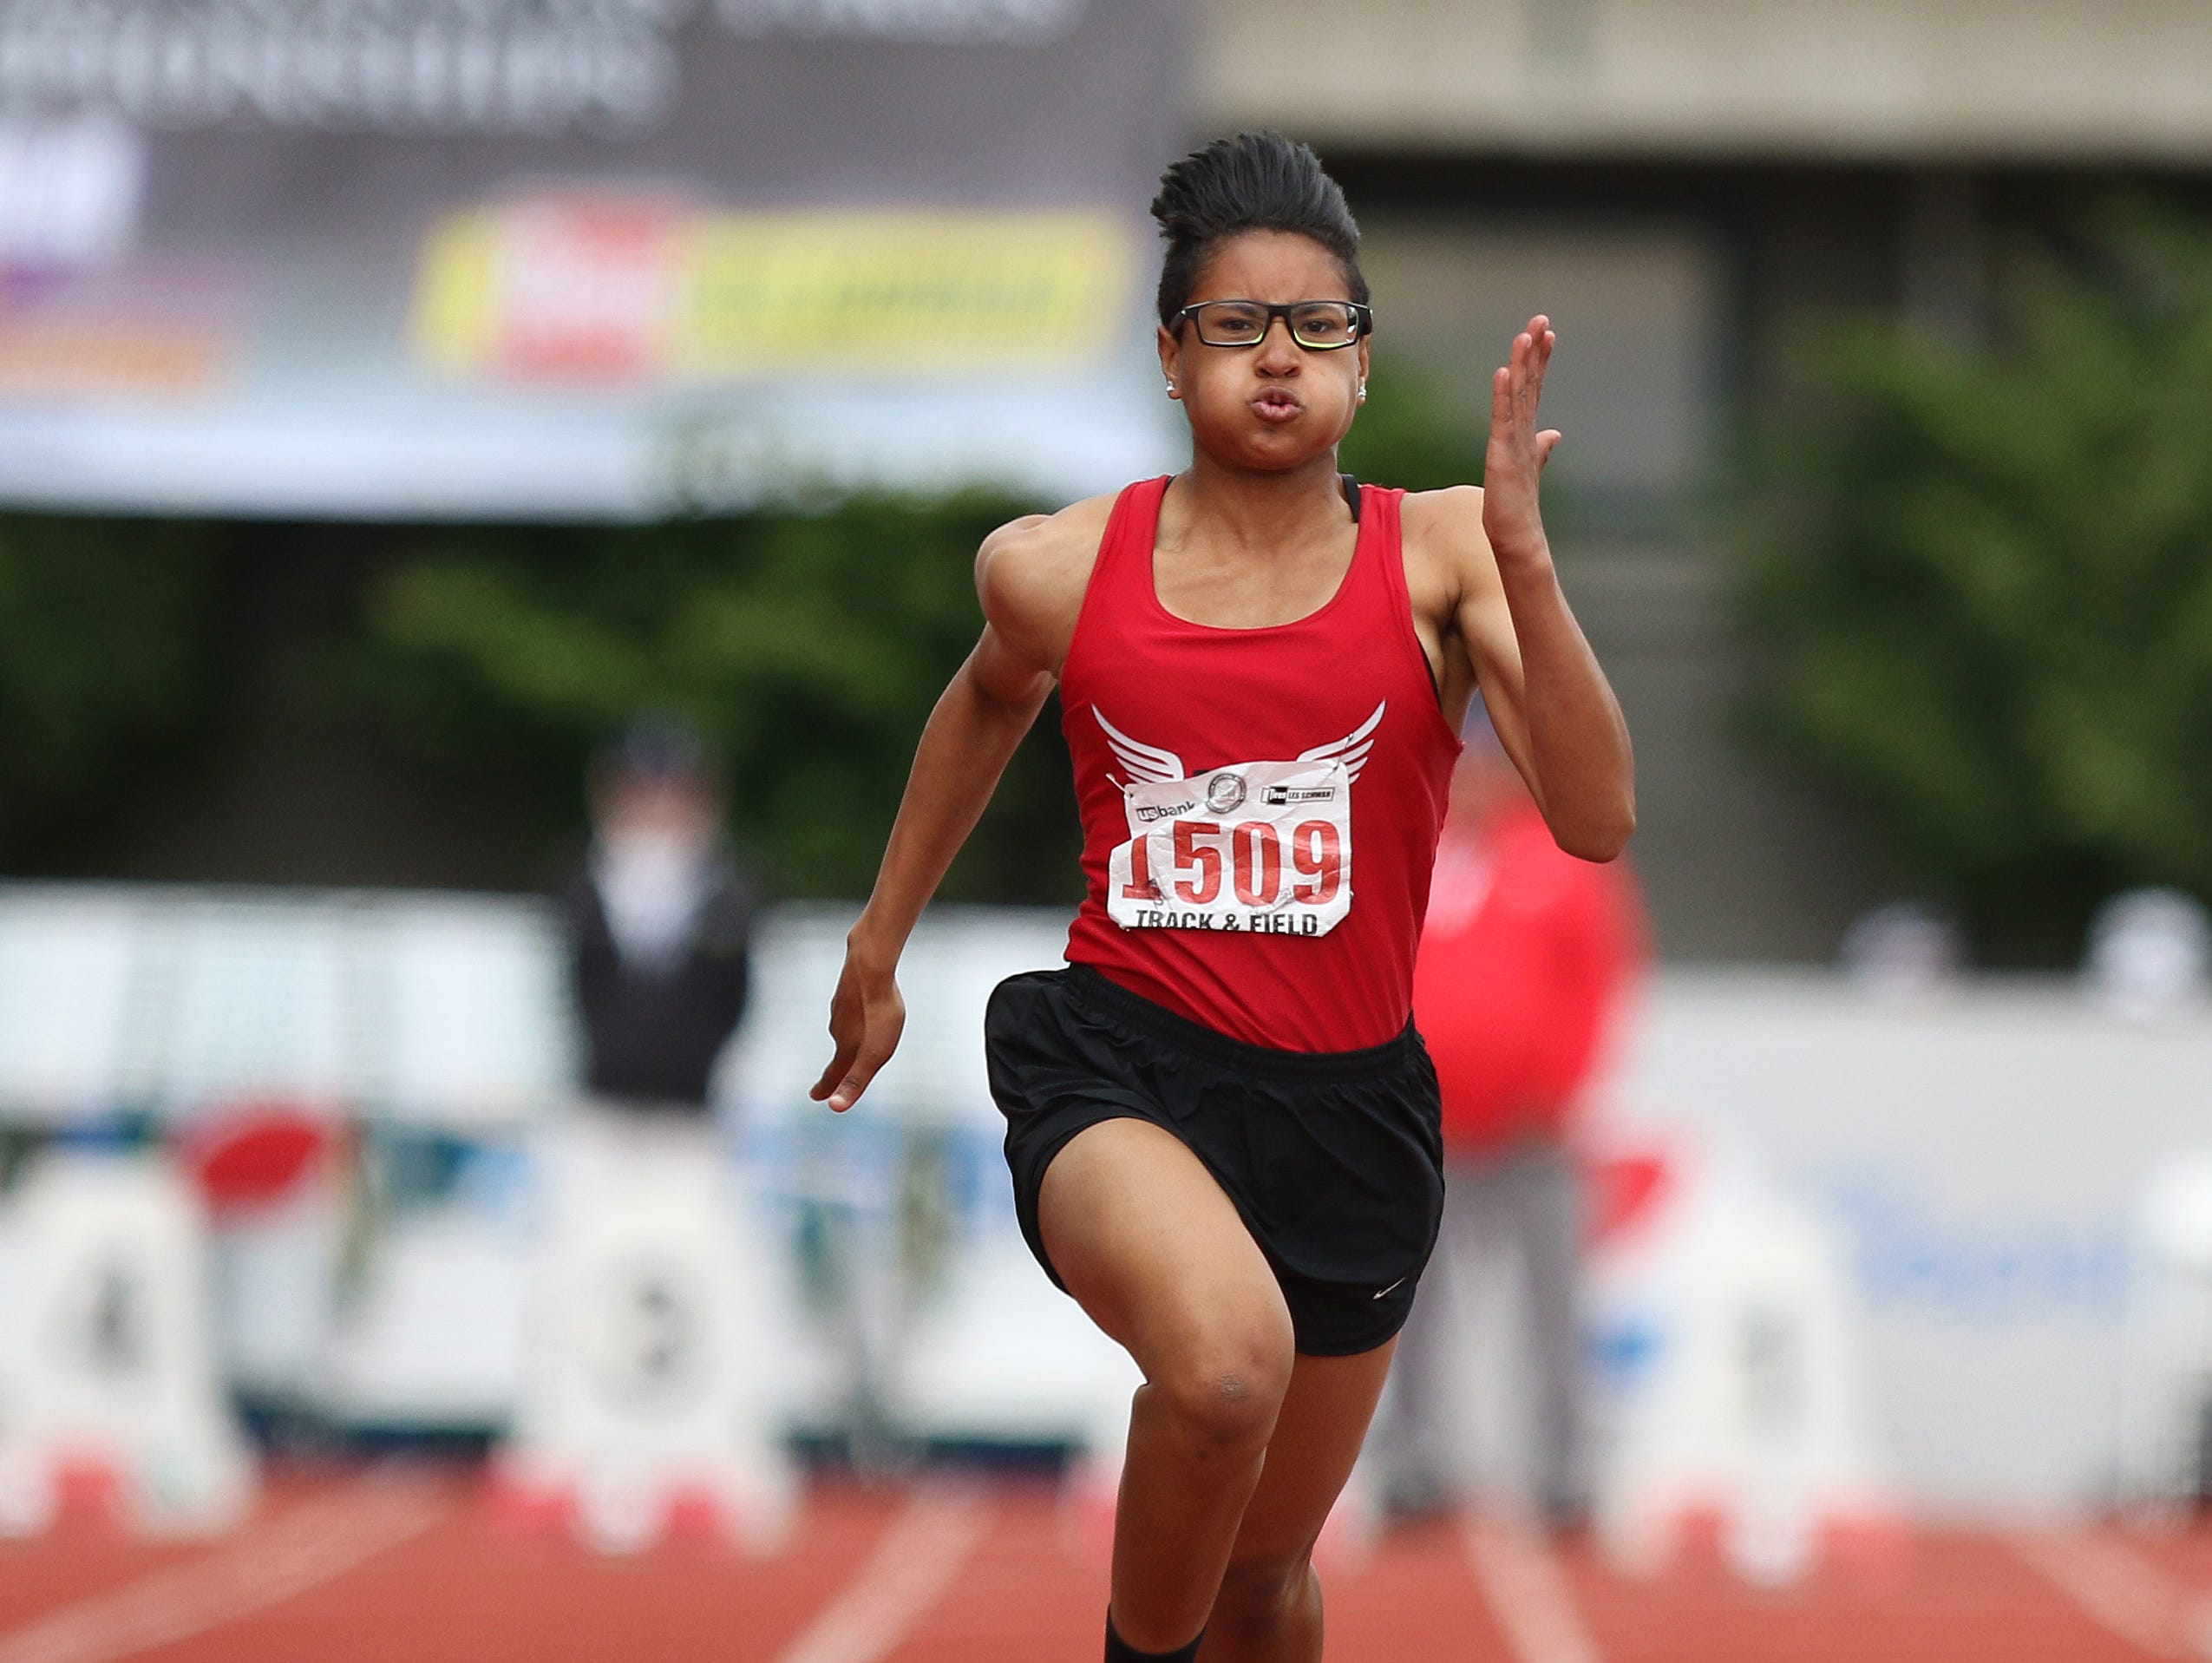 North Salem's Rebekah Miller won the state championship in the 100 meter dash in May 2016.